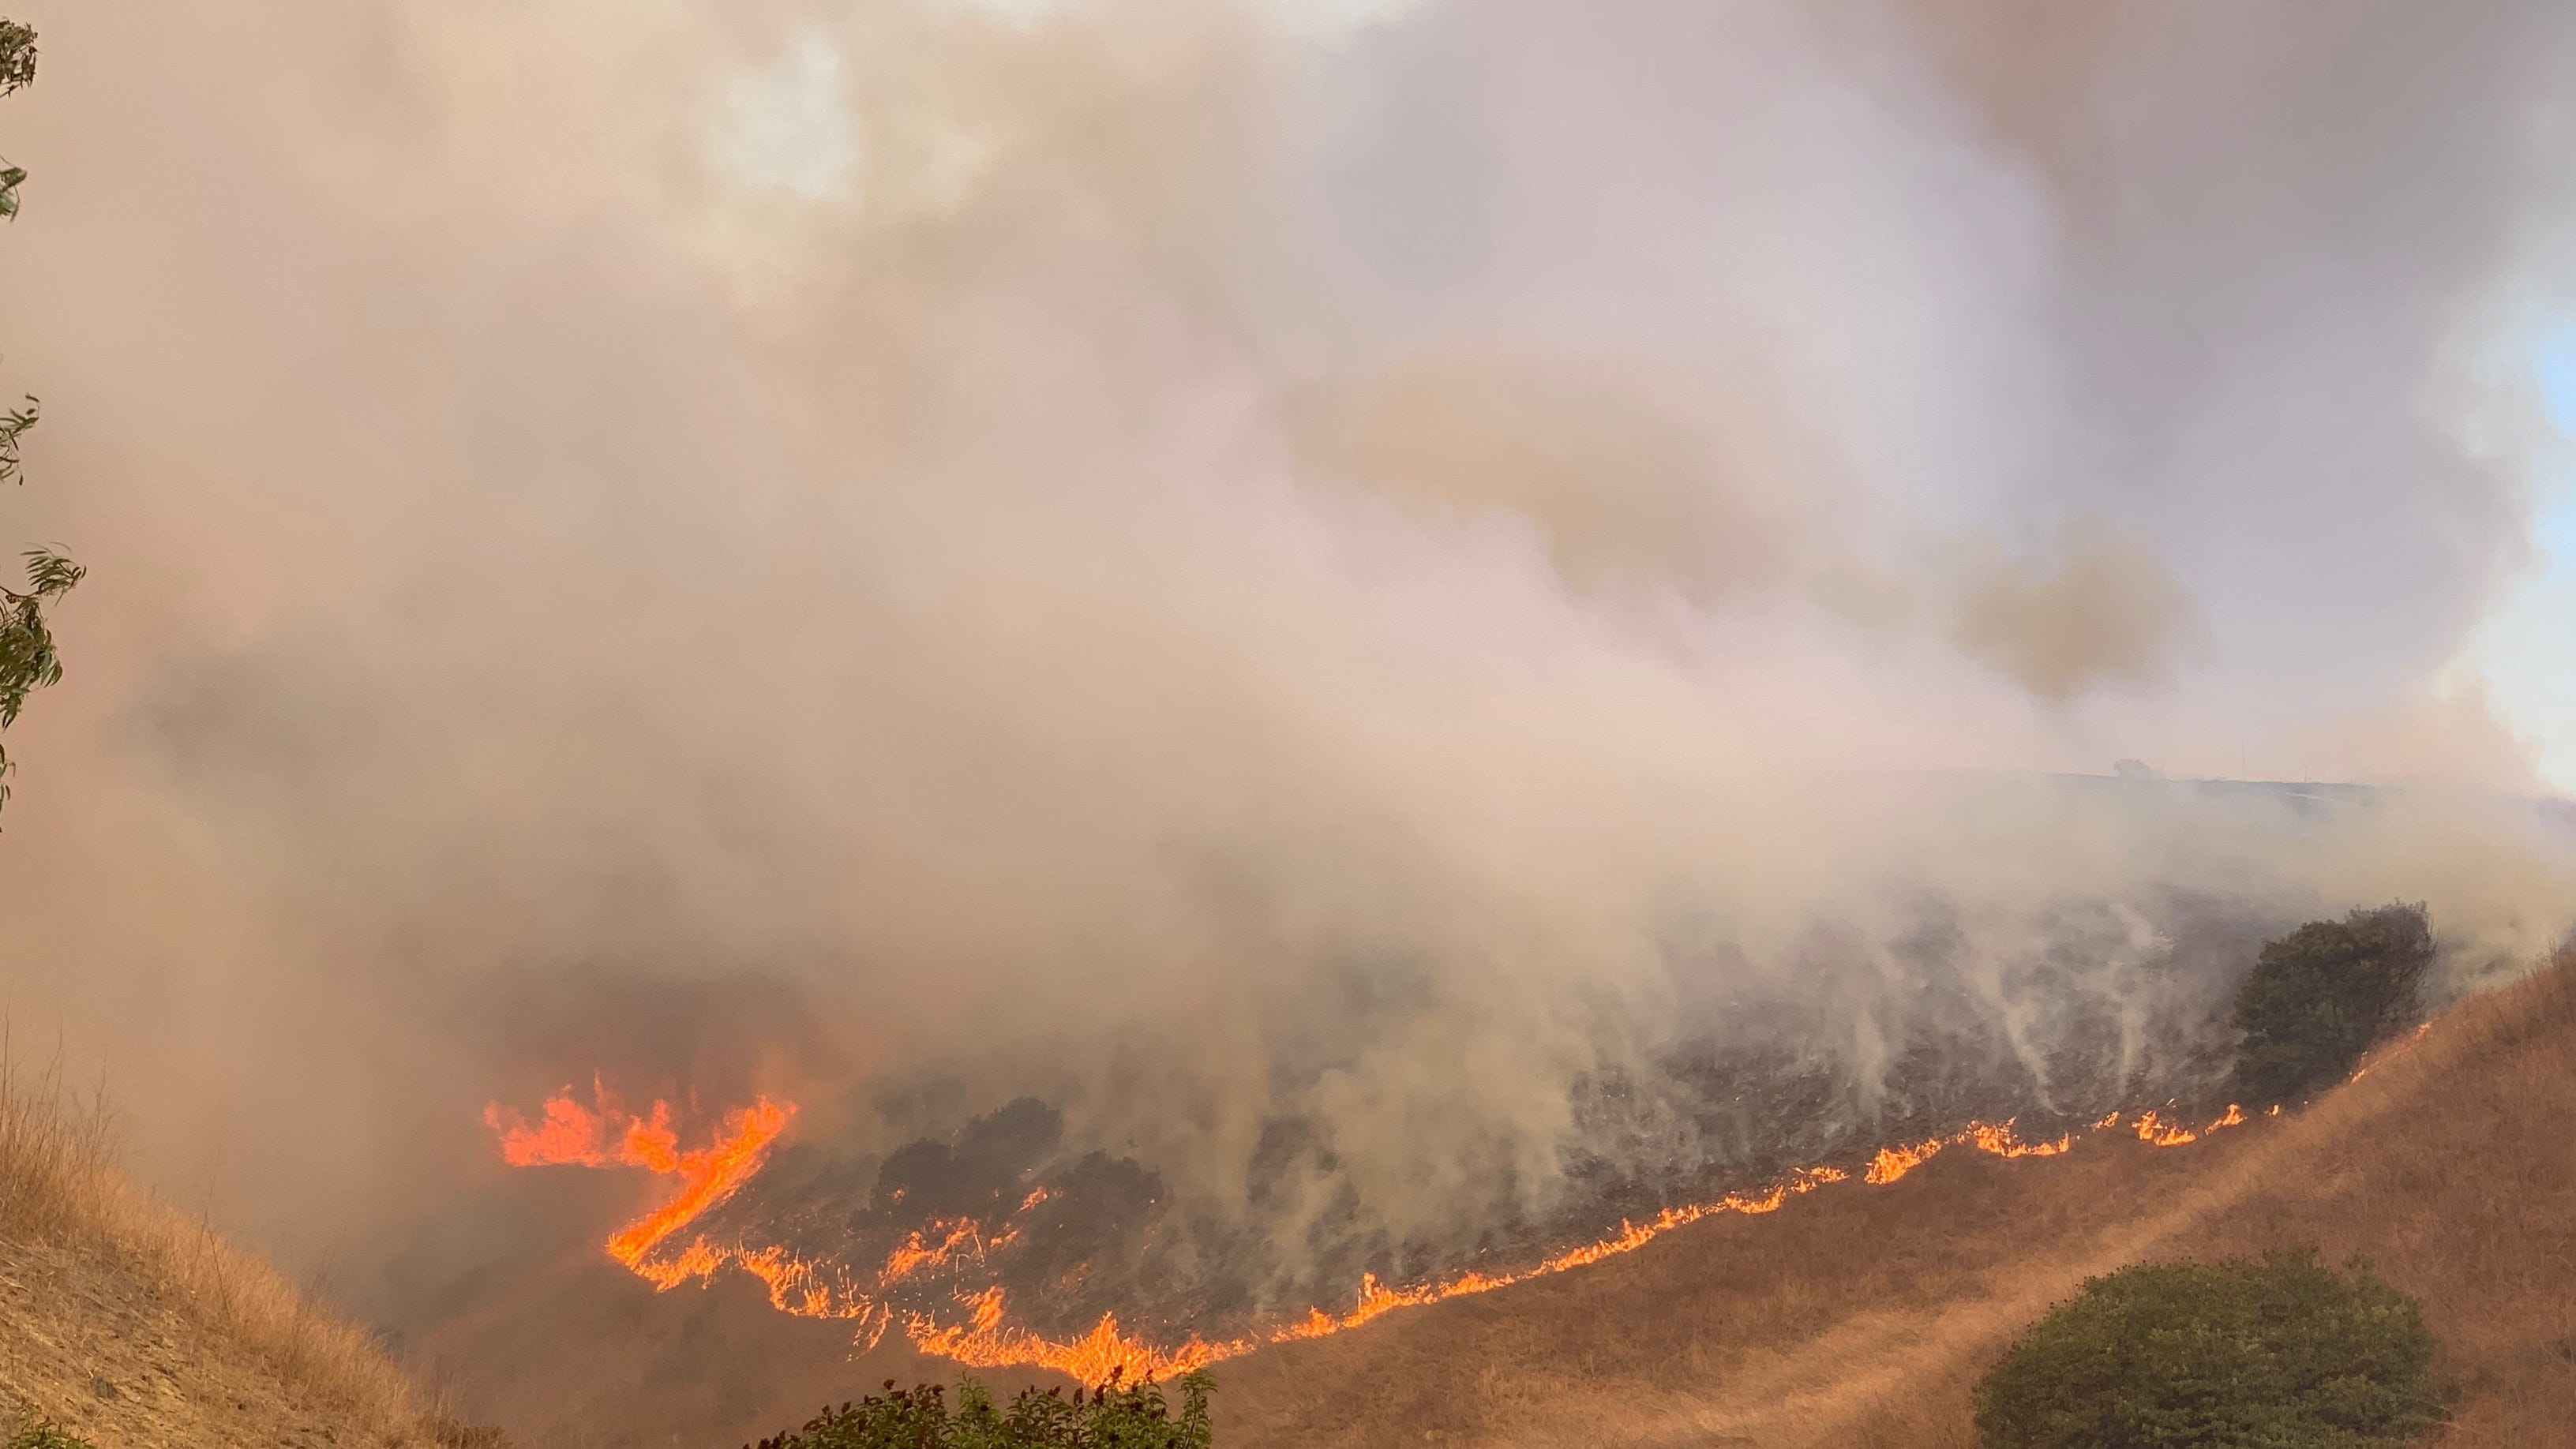 More than 14,000 acres burned; evacuations lifted